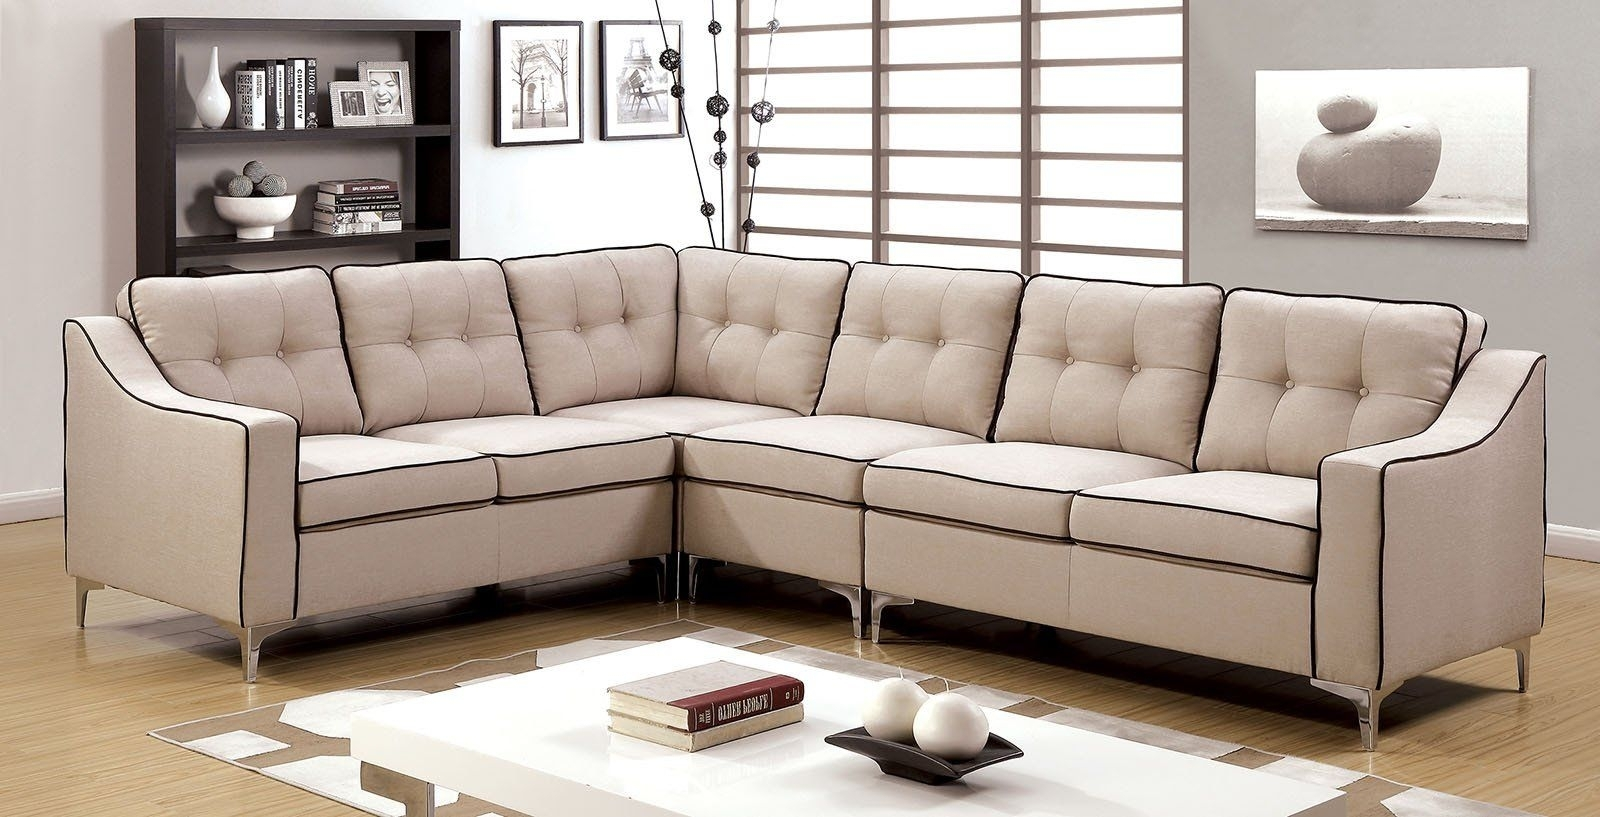 Glenda Ii Contemporary Sectional | Products with regard to Aidan 4 Piece Sectionals (Image 12 of 30)